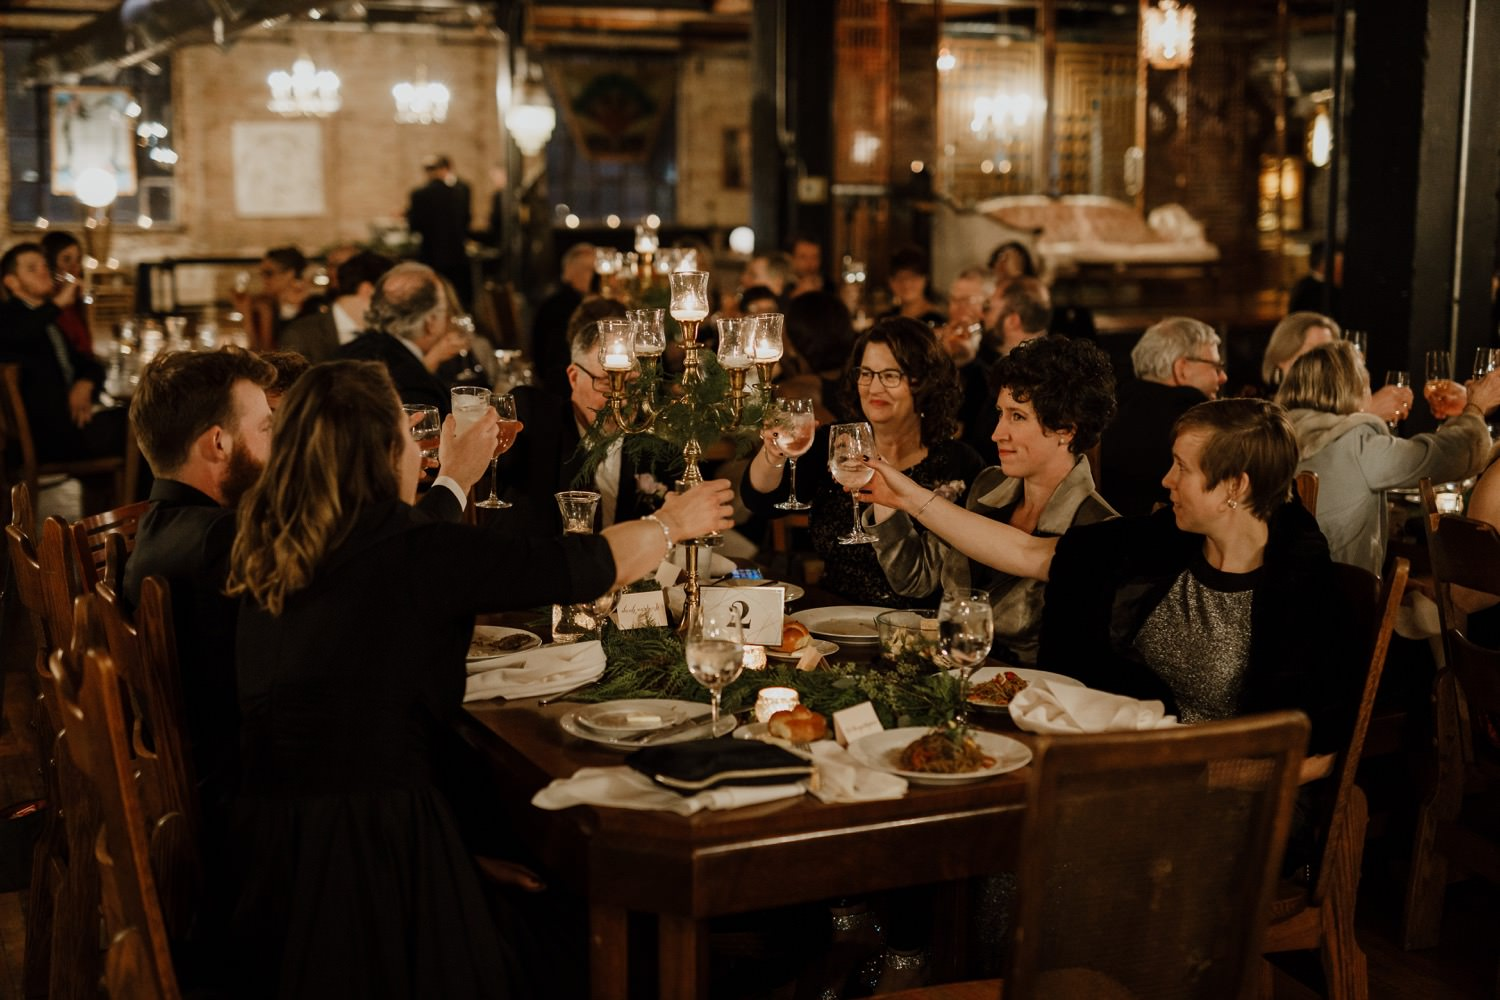 Guest toast and cheer at the wedding in Salvage ONe